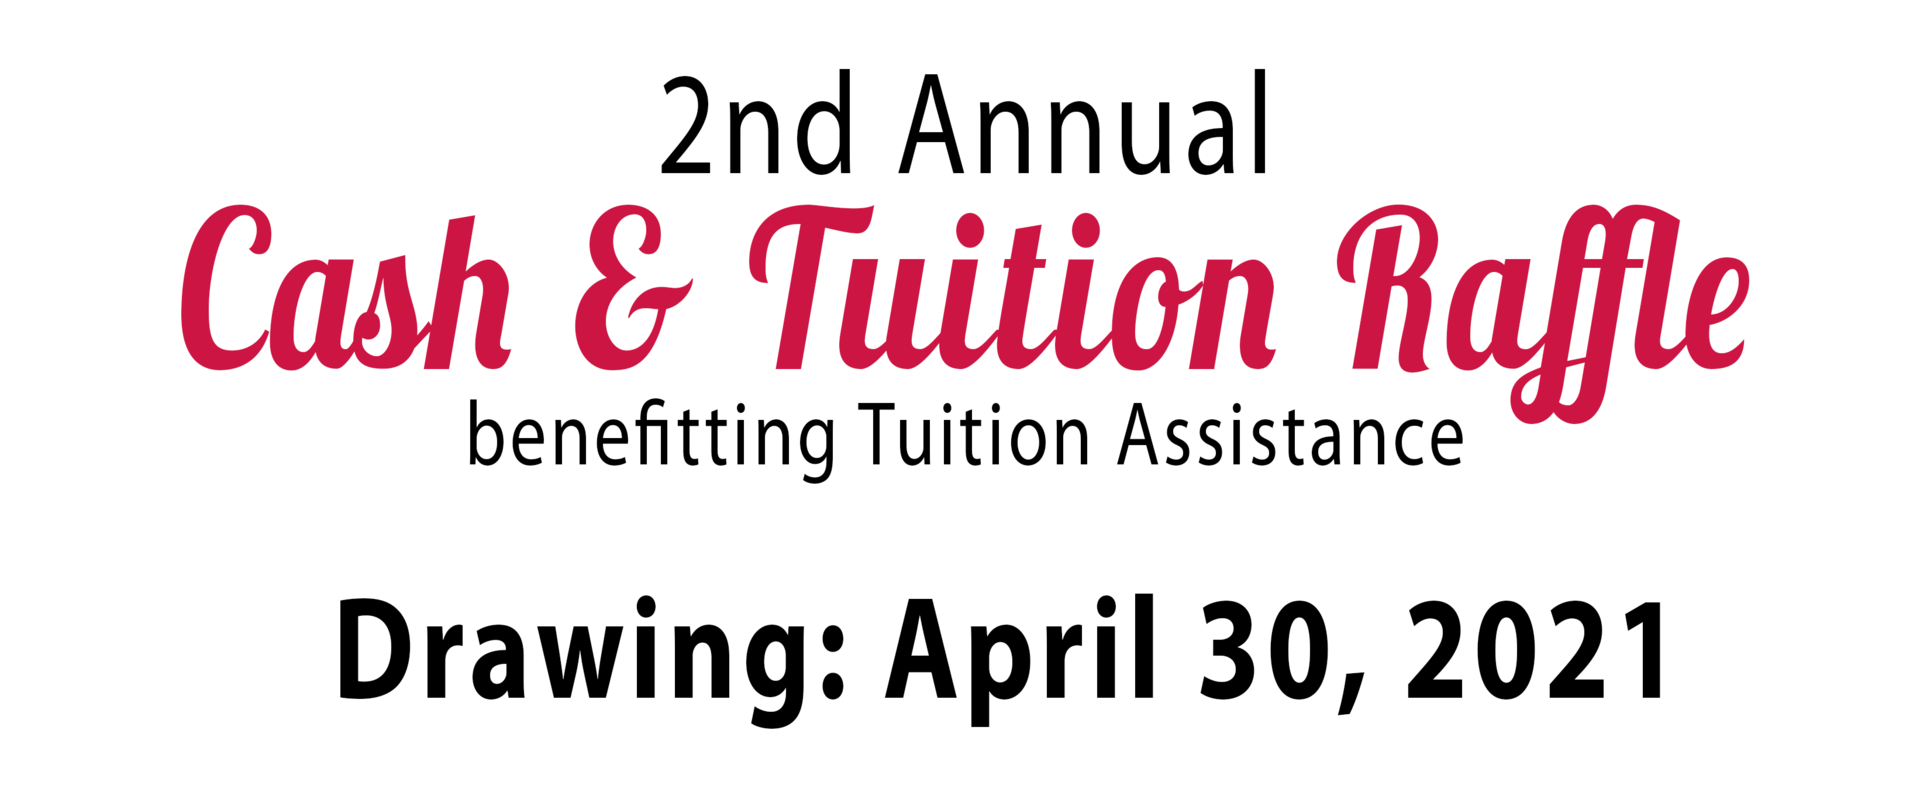 2nd annual cash and tuition raffle